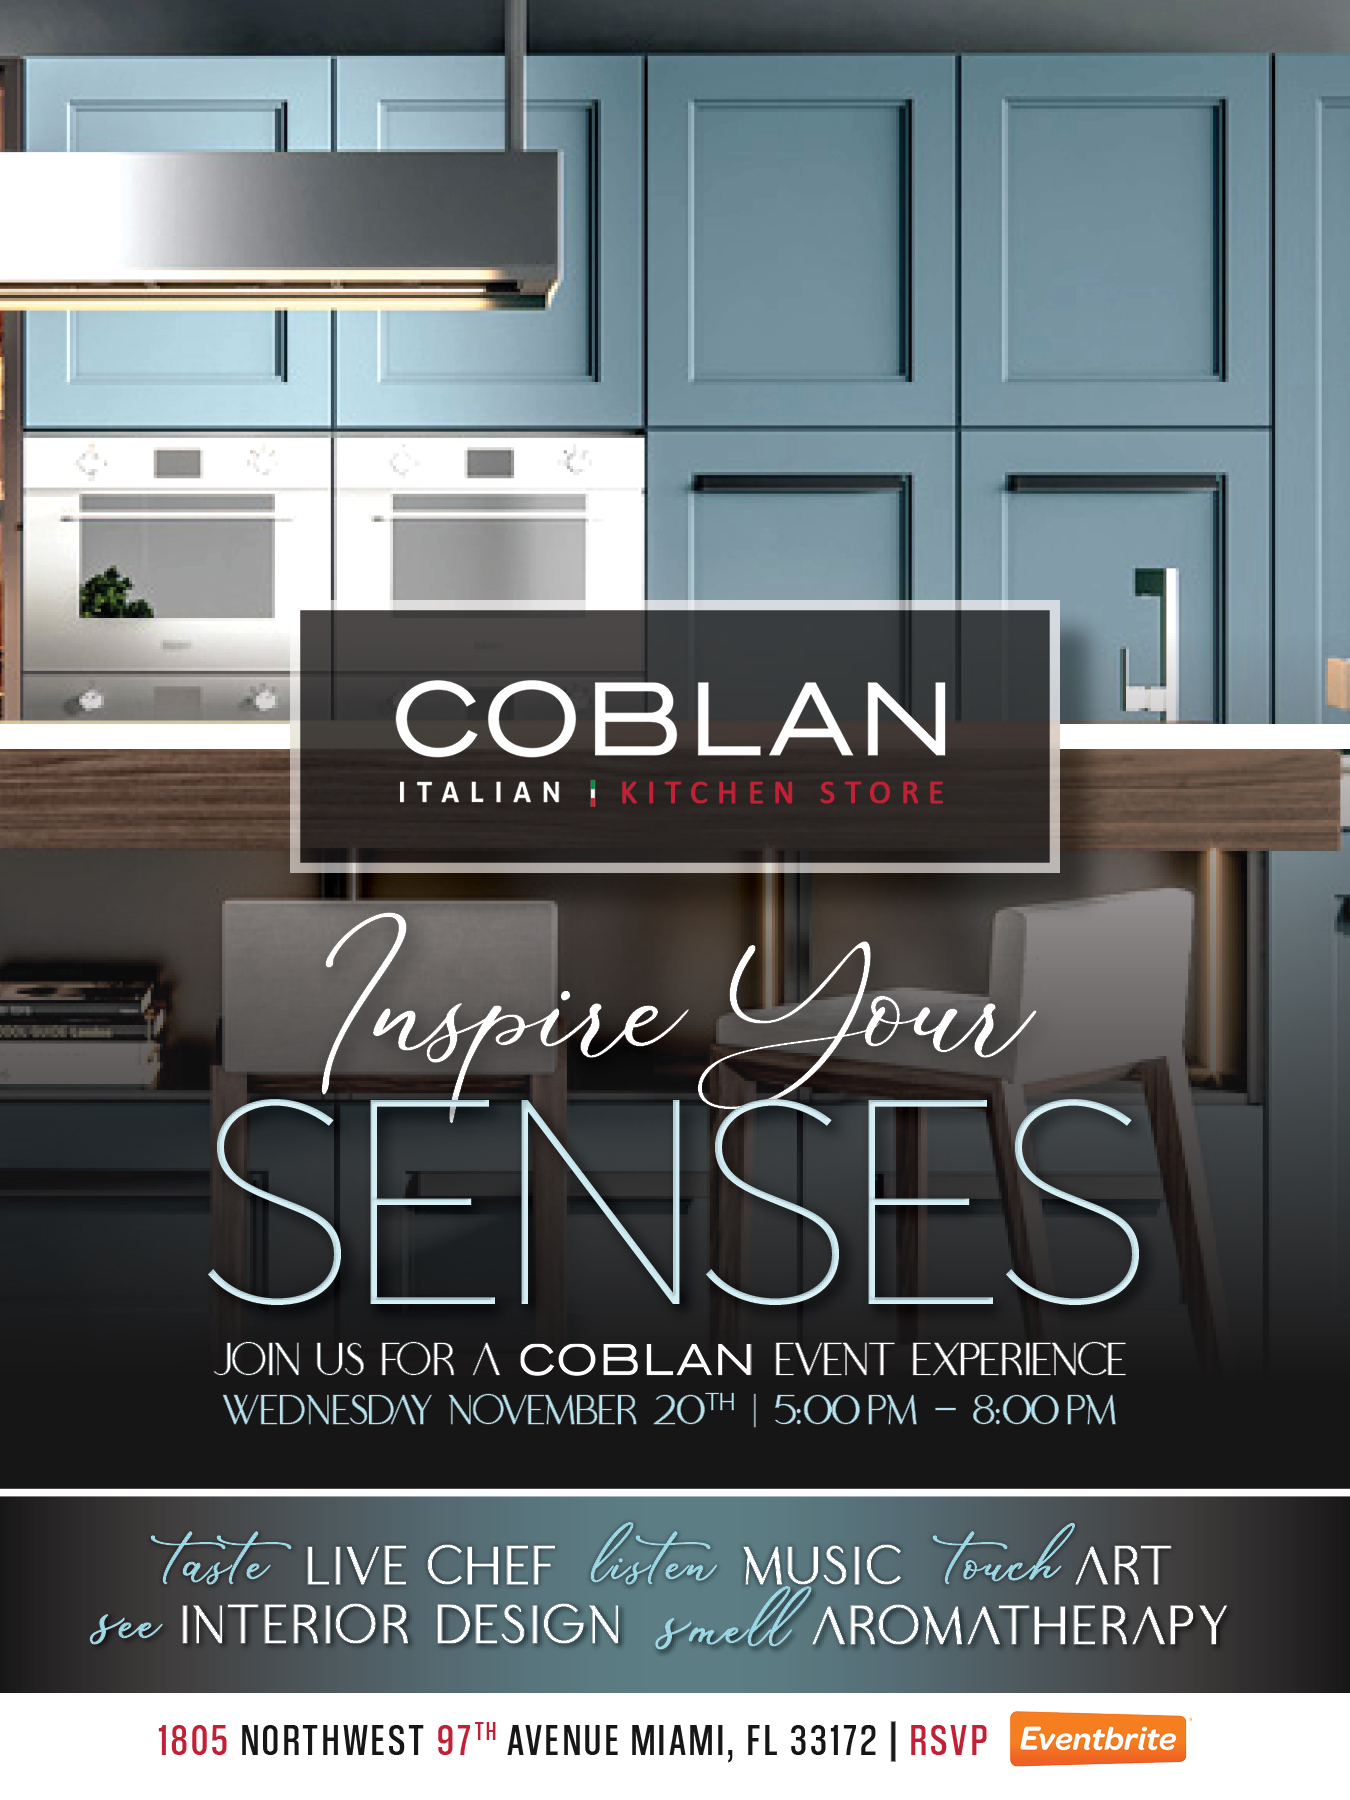 Coblan 5 Senses Event